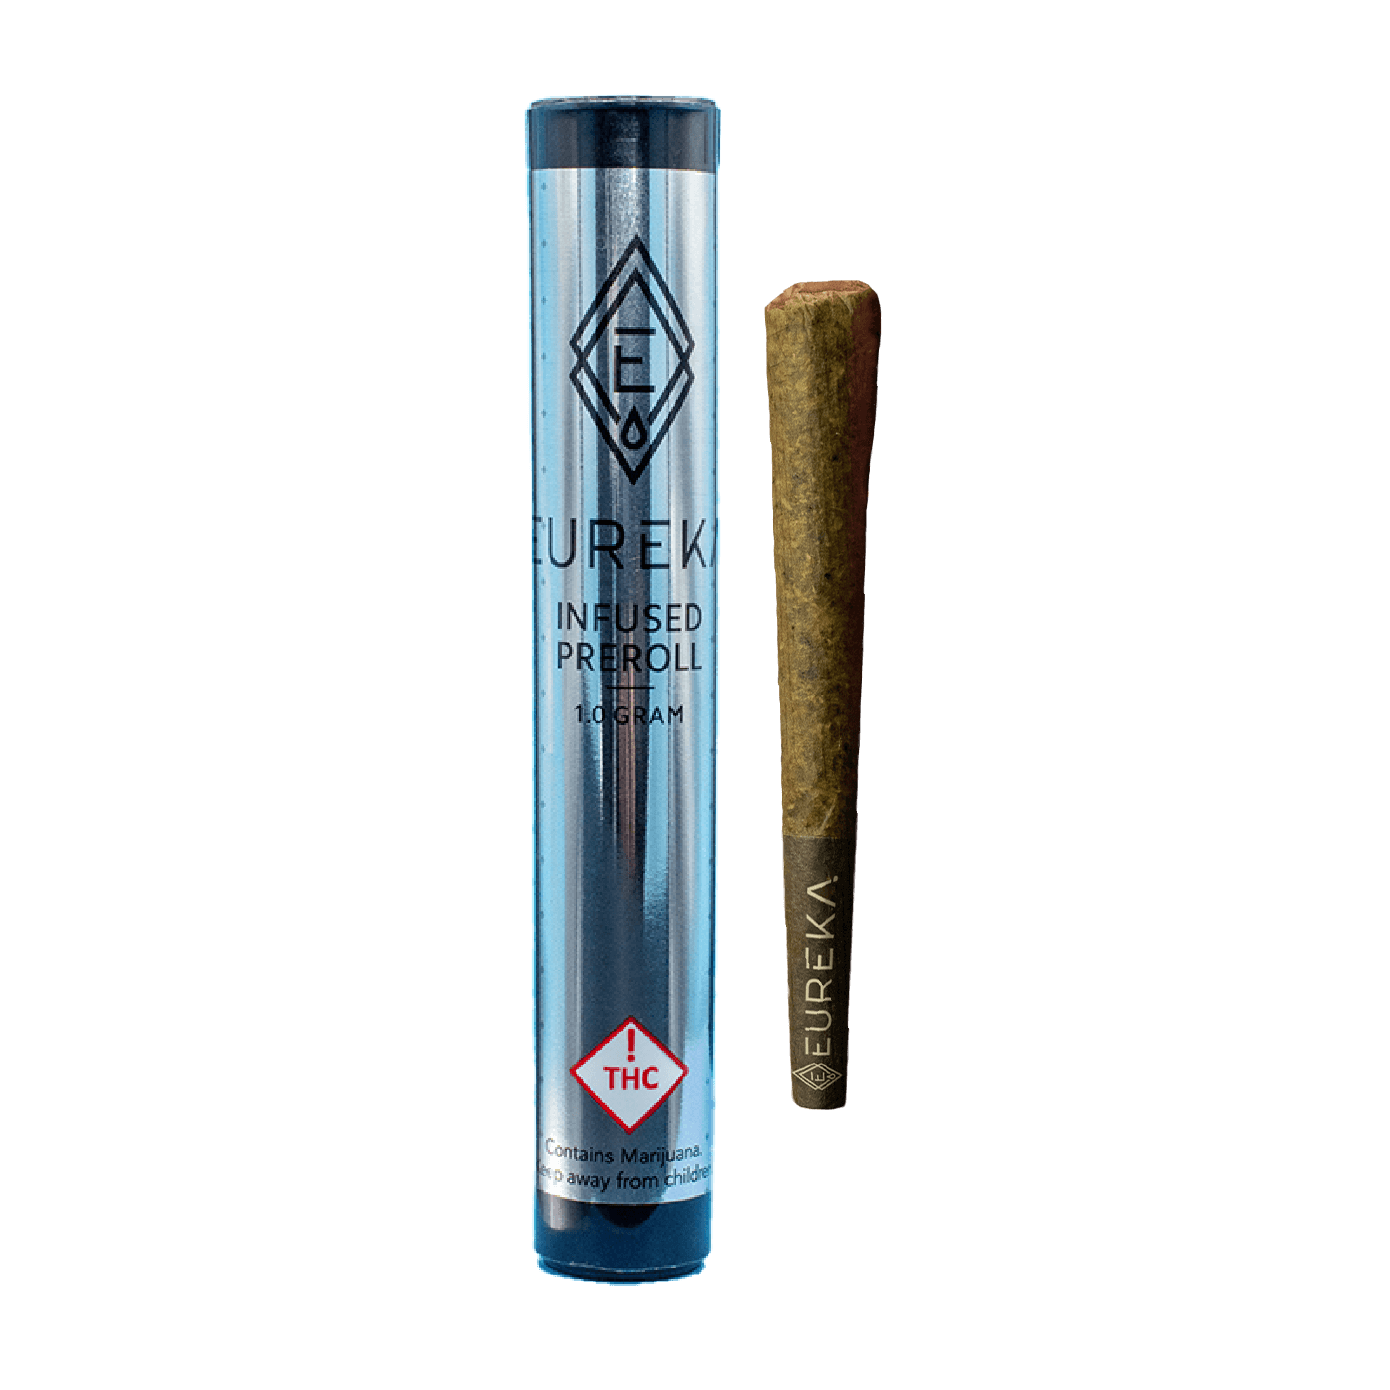 BISCOTTI INFUSED PRE-ROLL